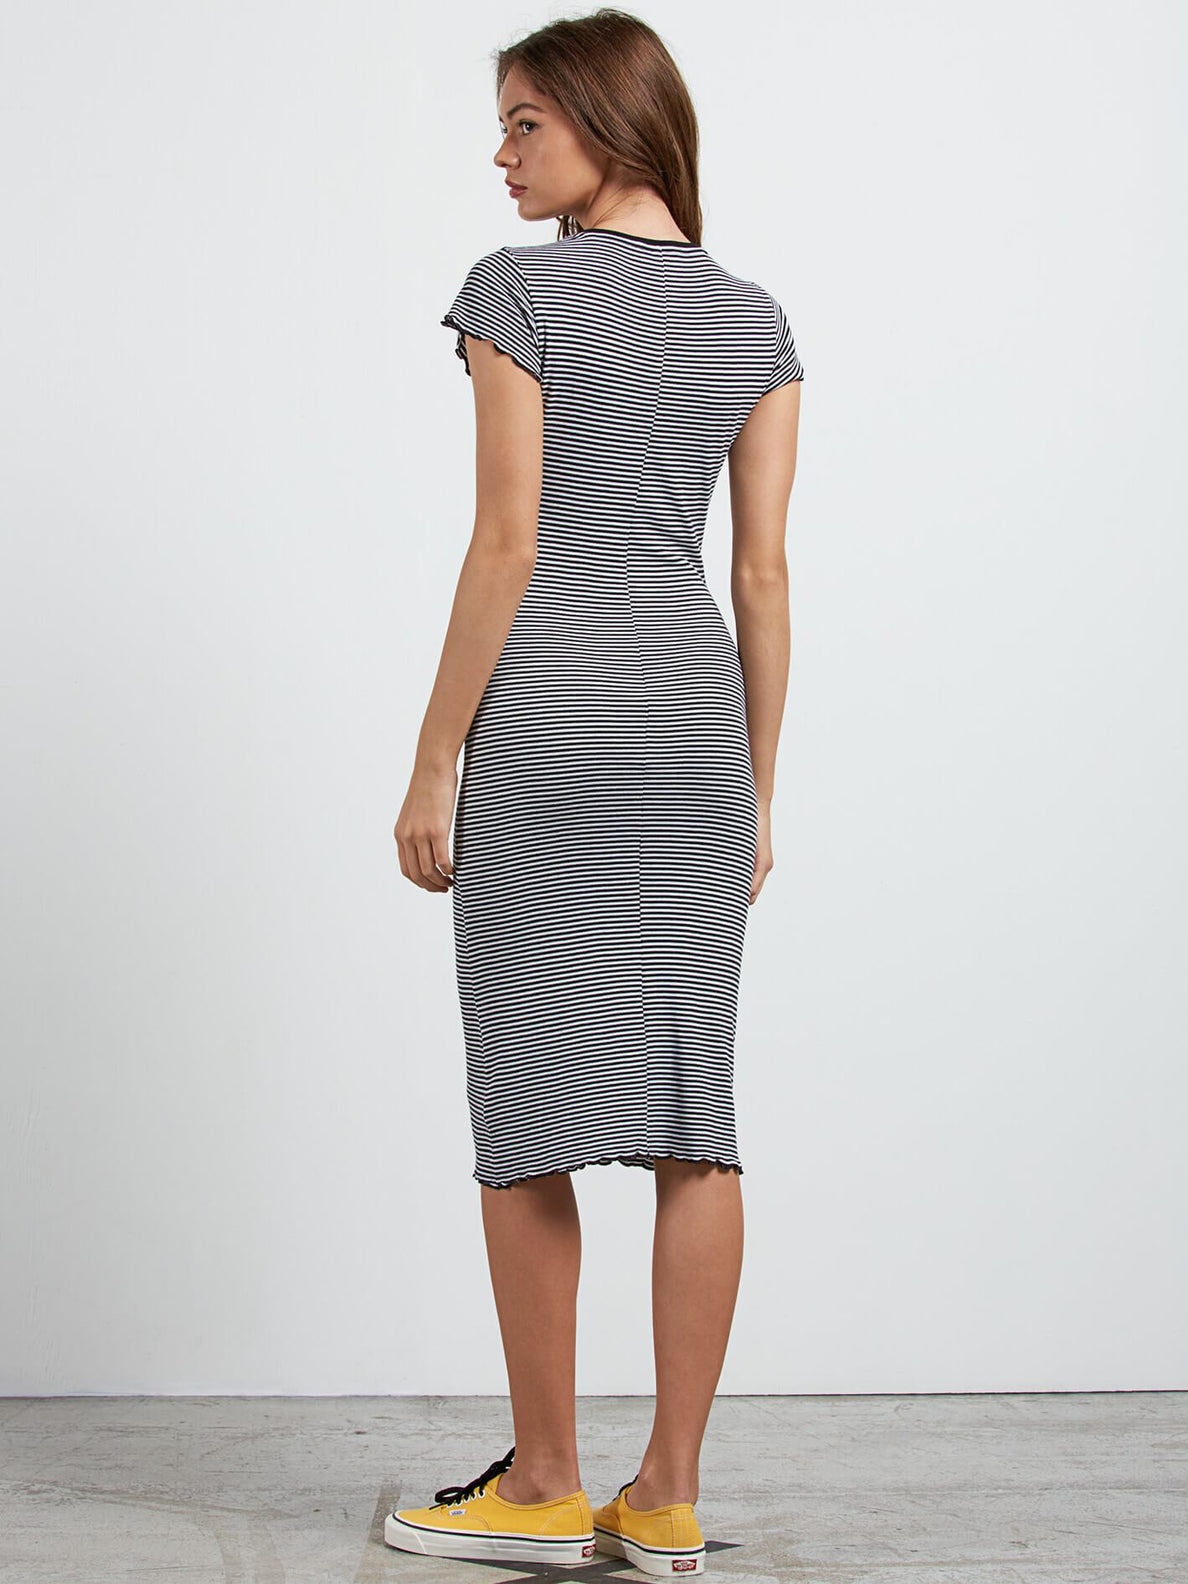 Colder Sholder Dress In Black Combo, Back View